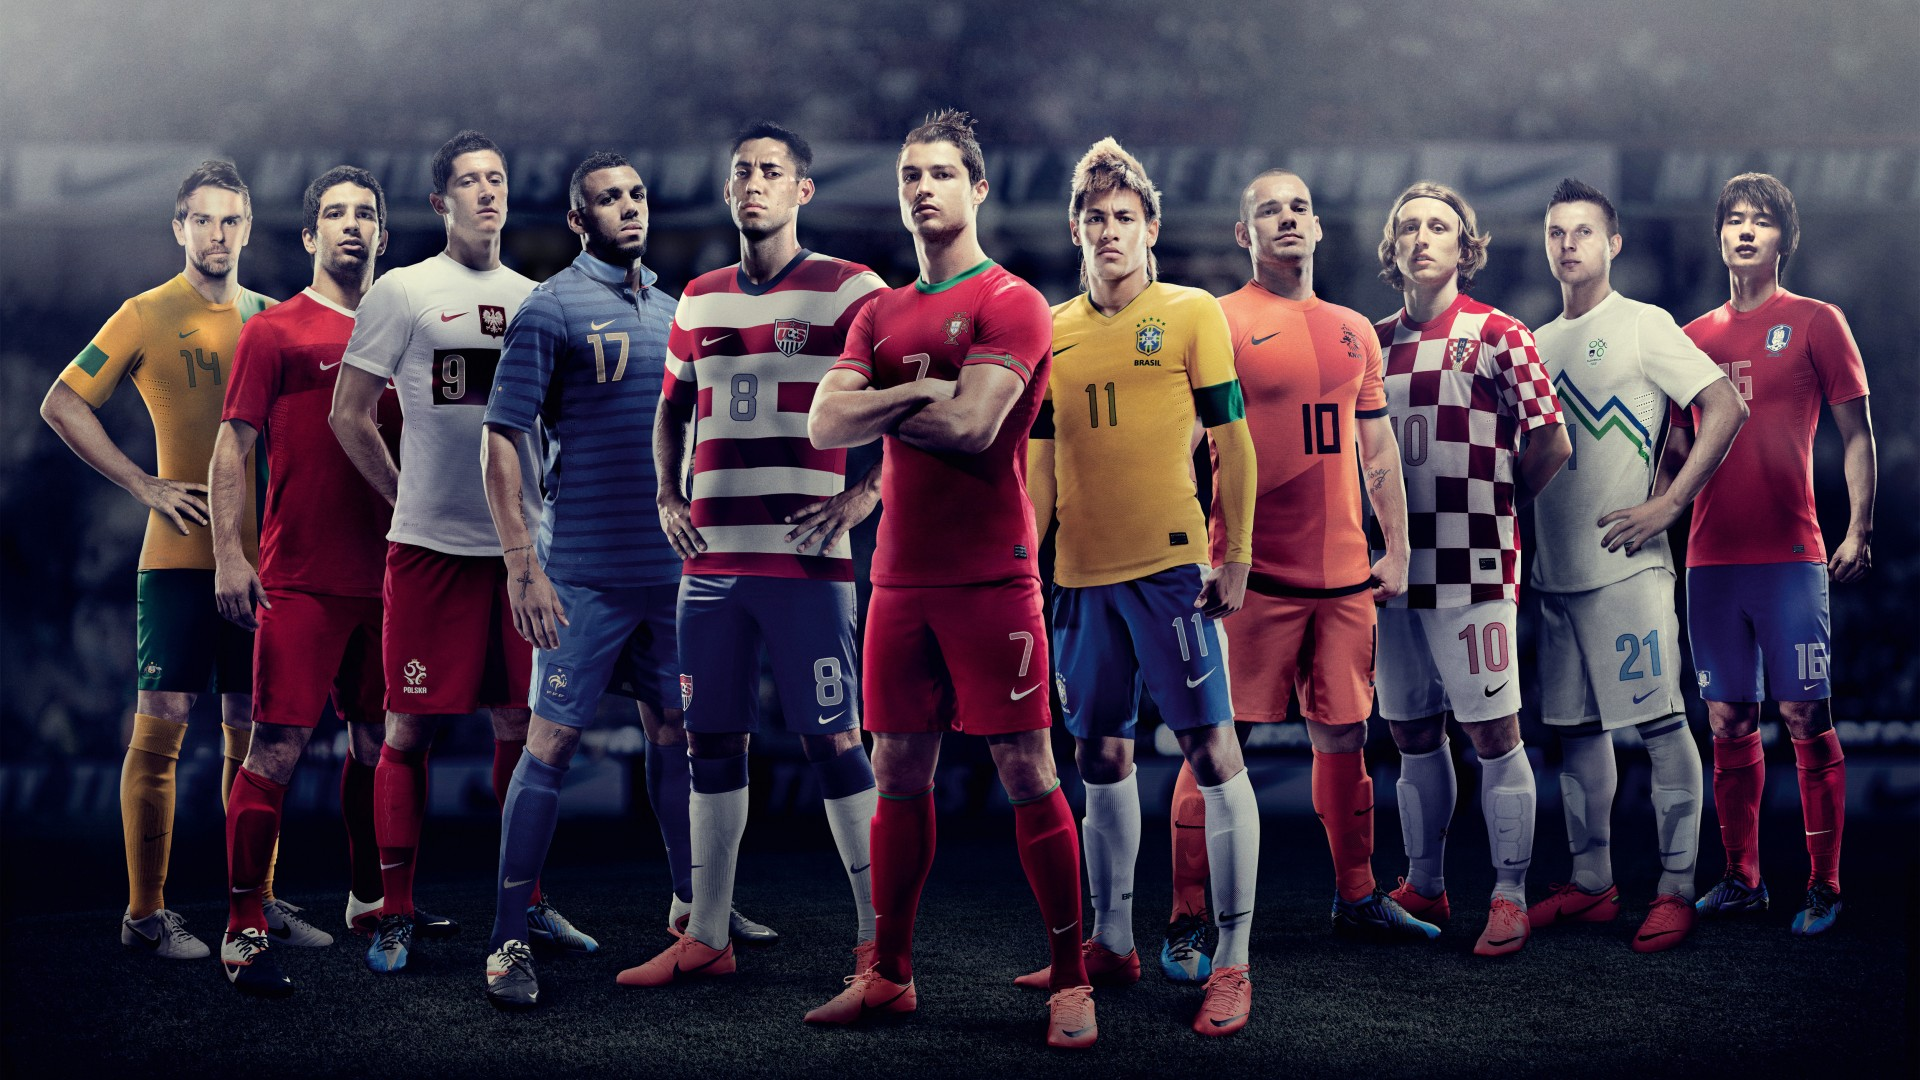 fonds d'écran nike football : tous les wallpapers nike football